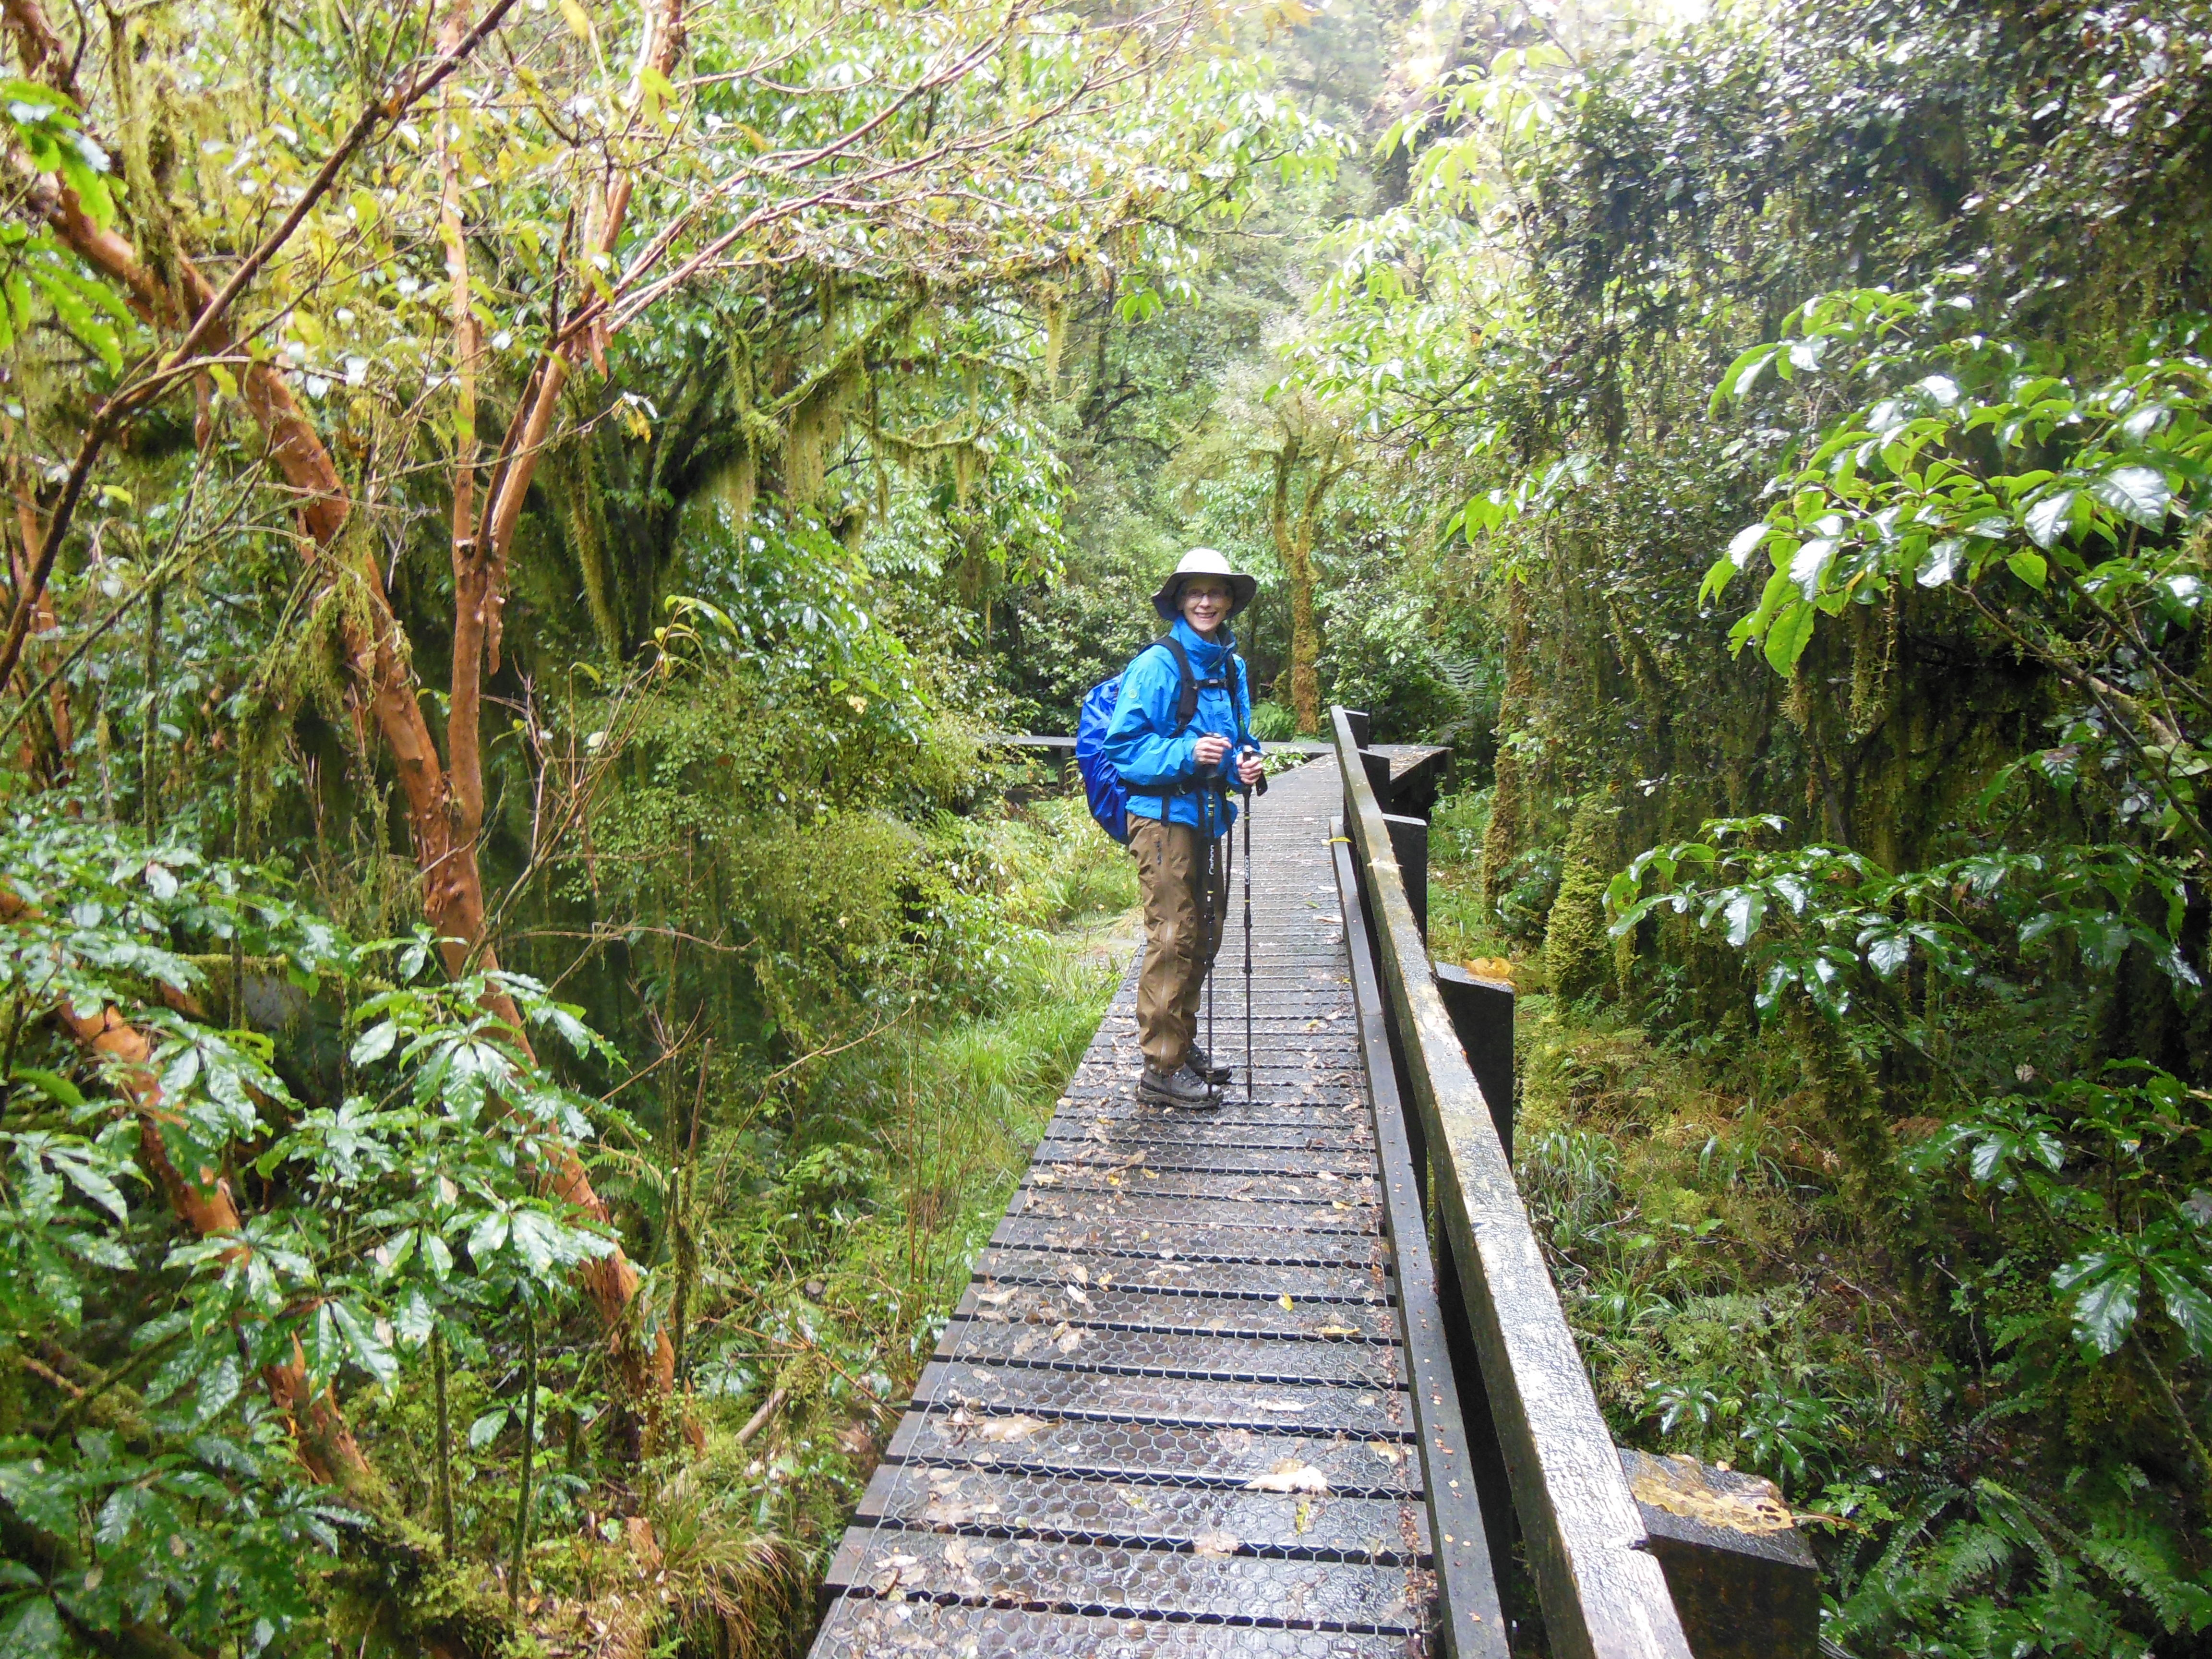 Photo courtesy of Nancy Allbritton This past year, Allbritton traveled to New Zealand and hiked the Milford Track — a widely known tramping route located amidst mountains and temperate rain forest in Fiordland National Park in the southwest of the South Island.